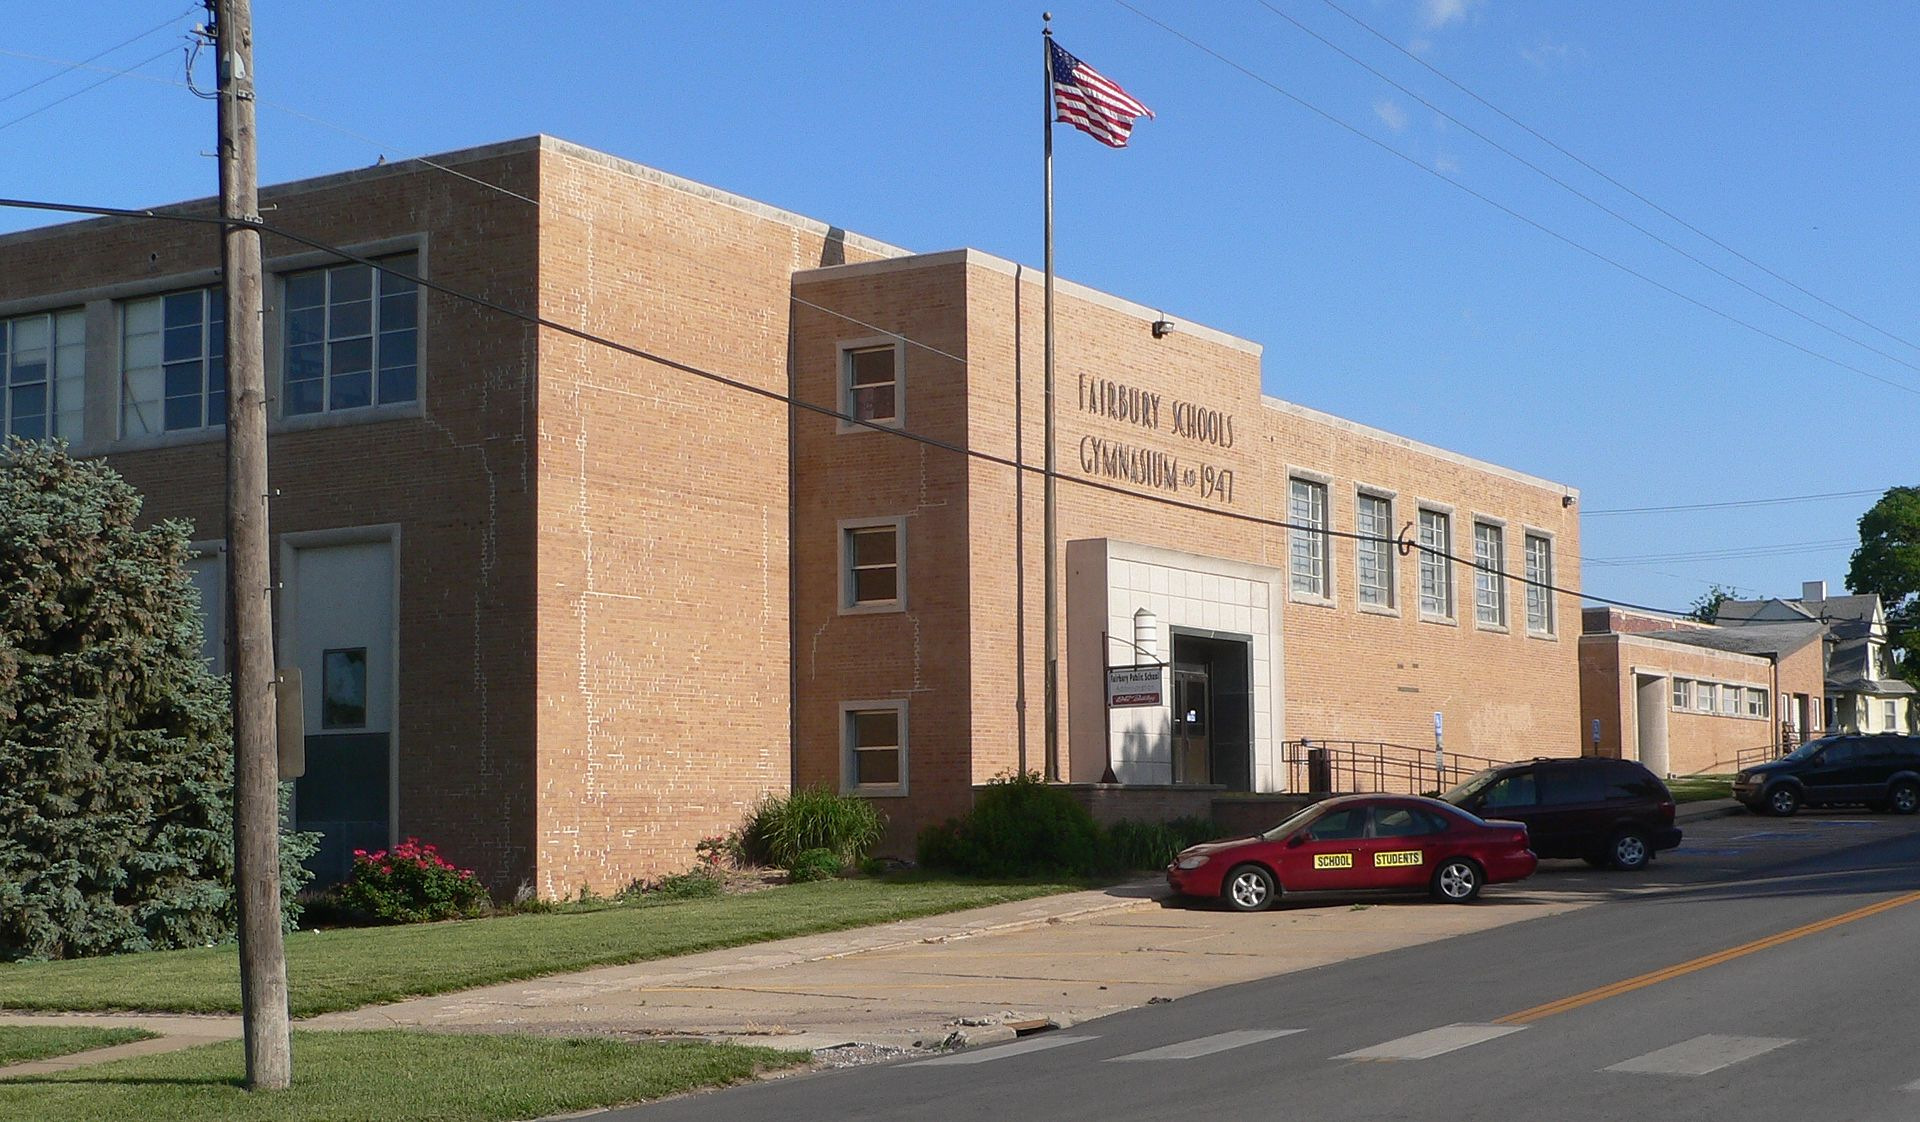 47Fairbury,_Nebraska_school_gymnasium_2.JPG